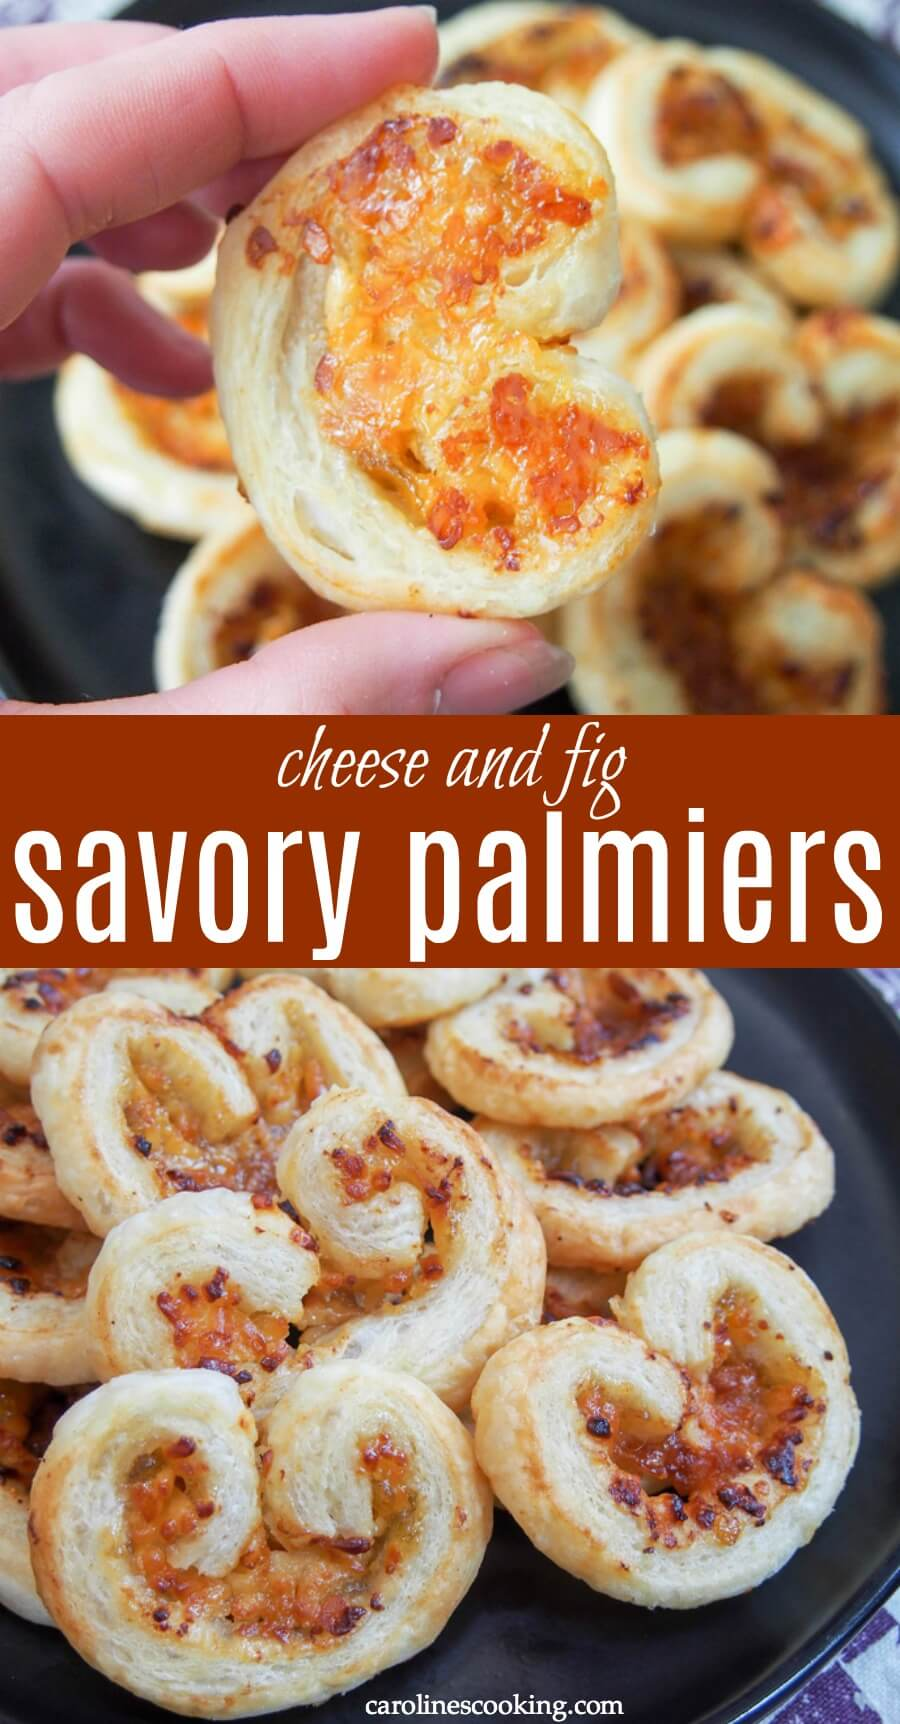 These savory palmiers need only 3 ingredients (puff pastry, cheese and fig preserves) but they are transformed into a delicious sweet-savory, crispy snack. Perfect for a party or any excuse you want to find! #brunchweek #ad #savorypalmiers #cheesepastry